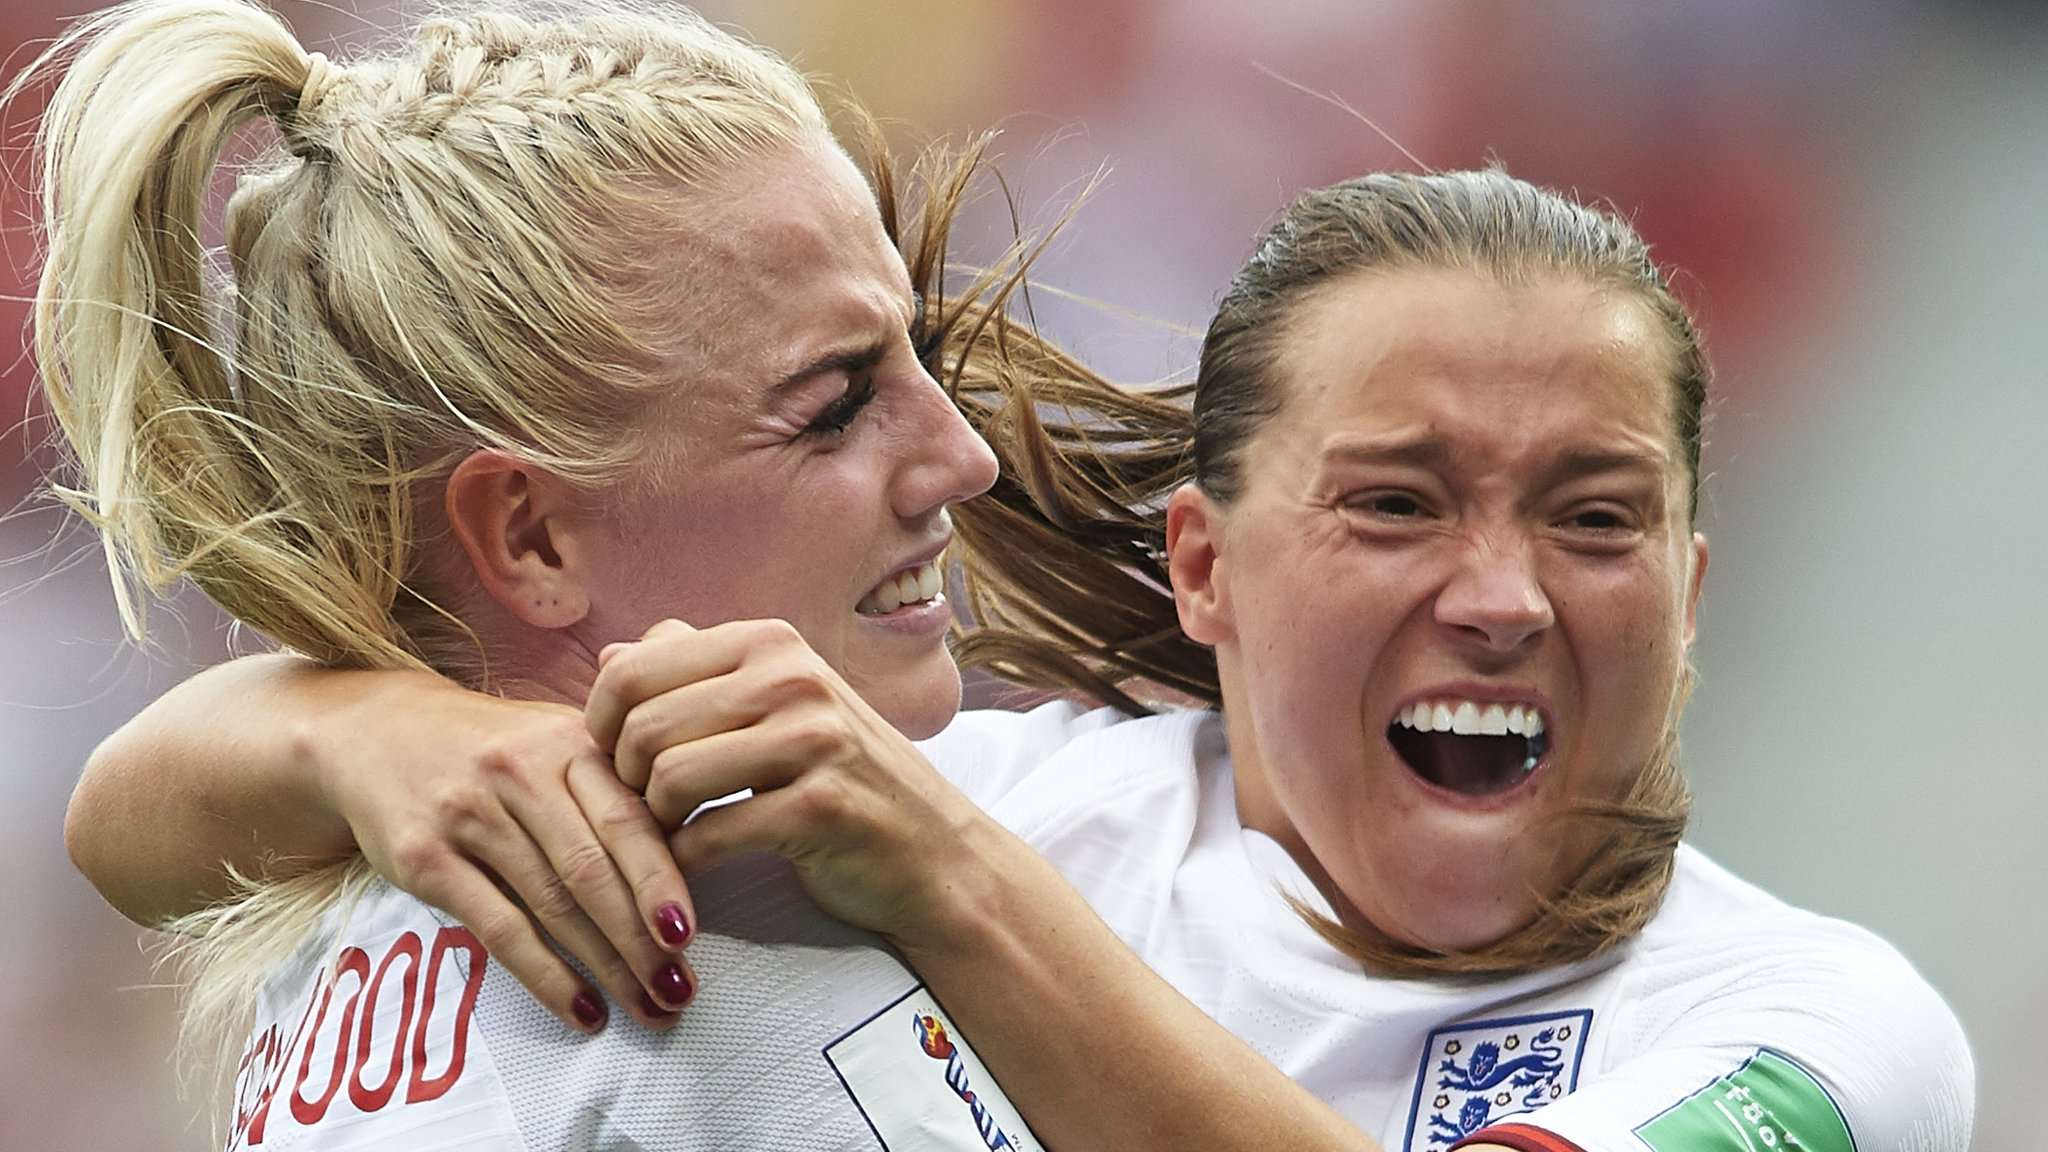 Women's World Cup 2019: England beat Cameroon in fiery encounter to reach quarter-finals